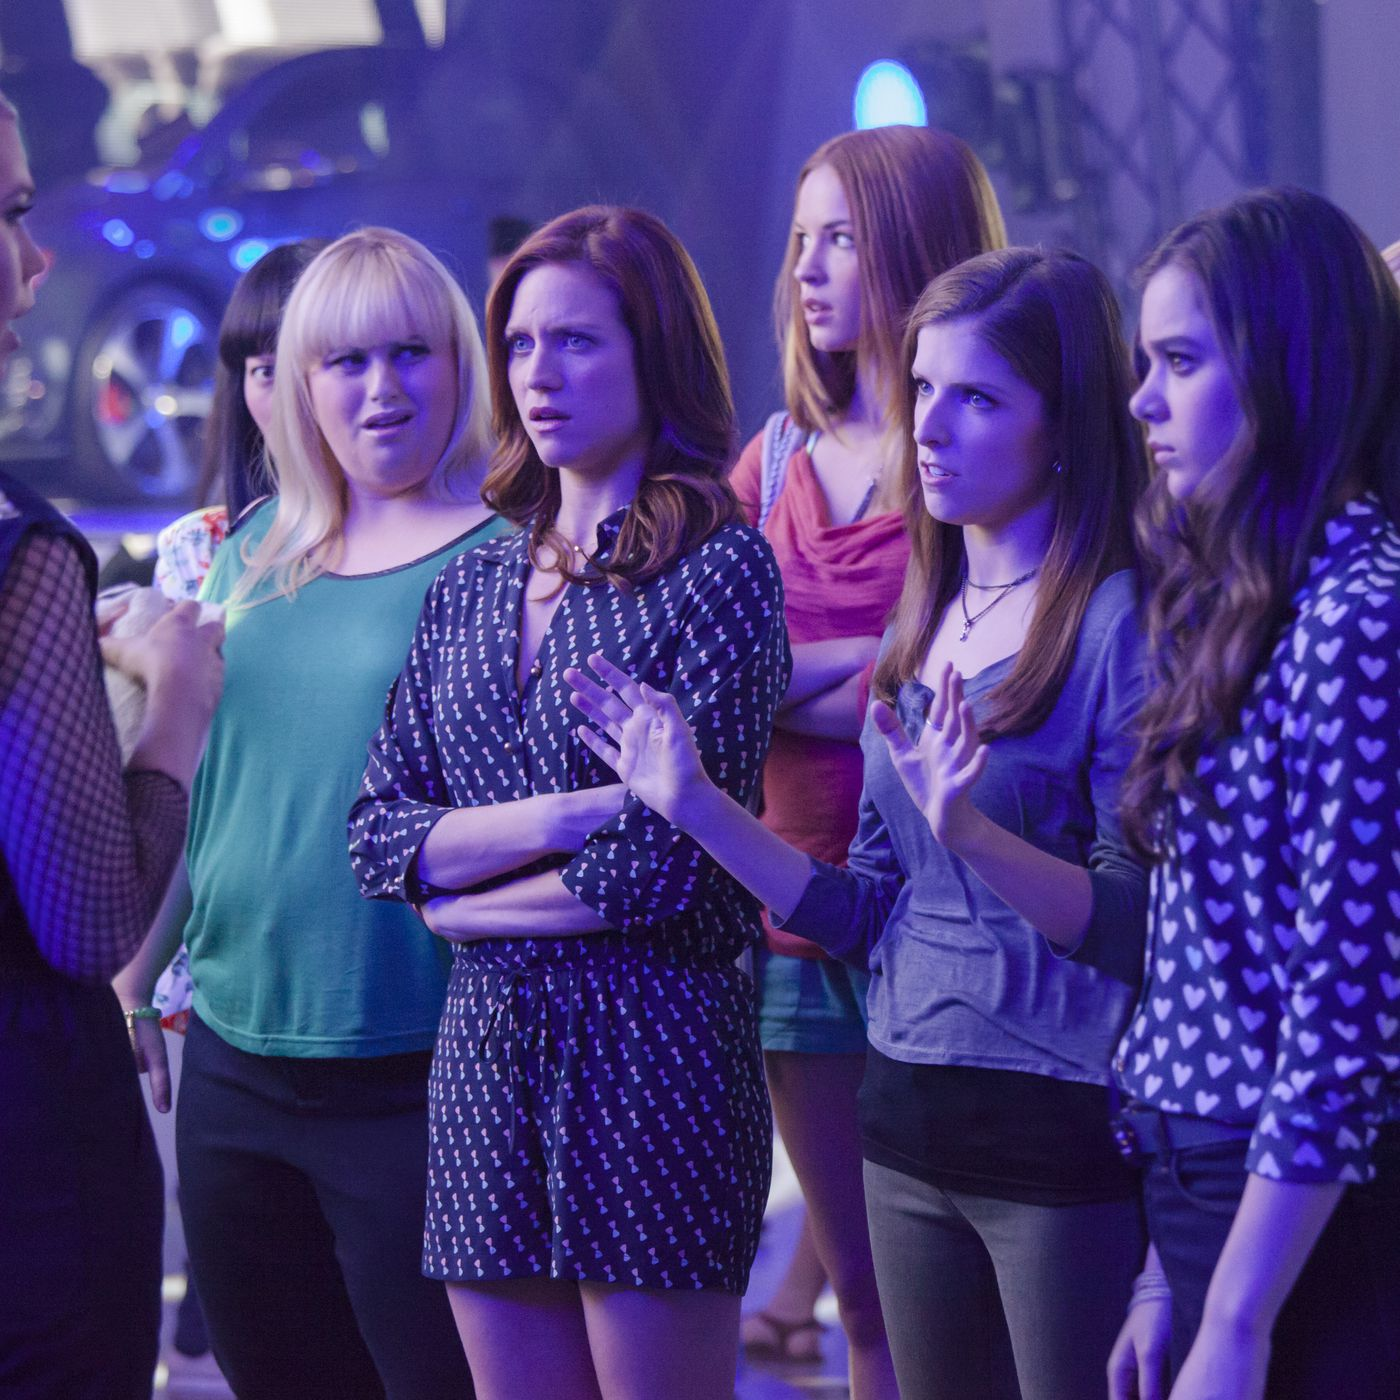 Pitch Perfect 2 is trying too hard | The Verge